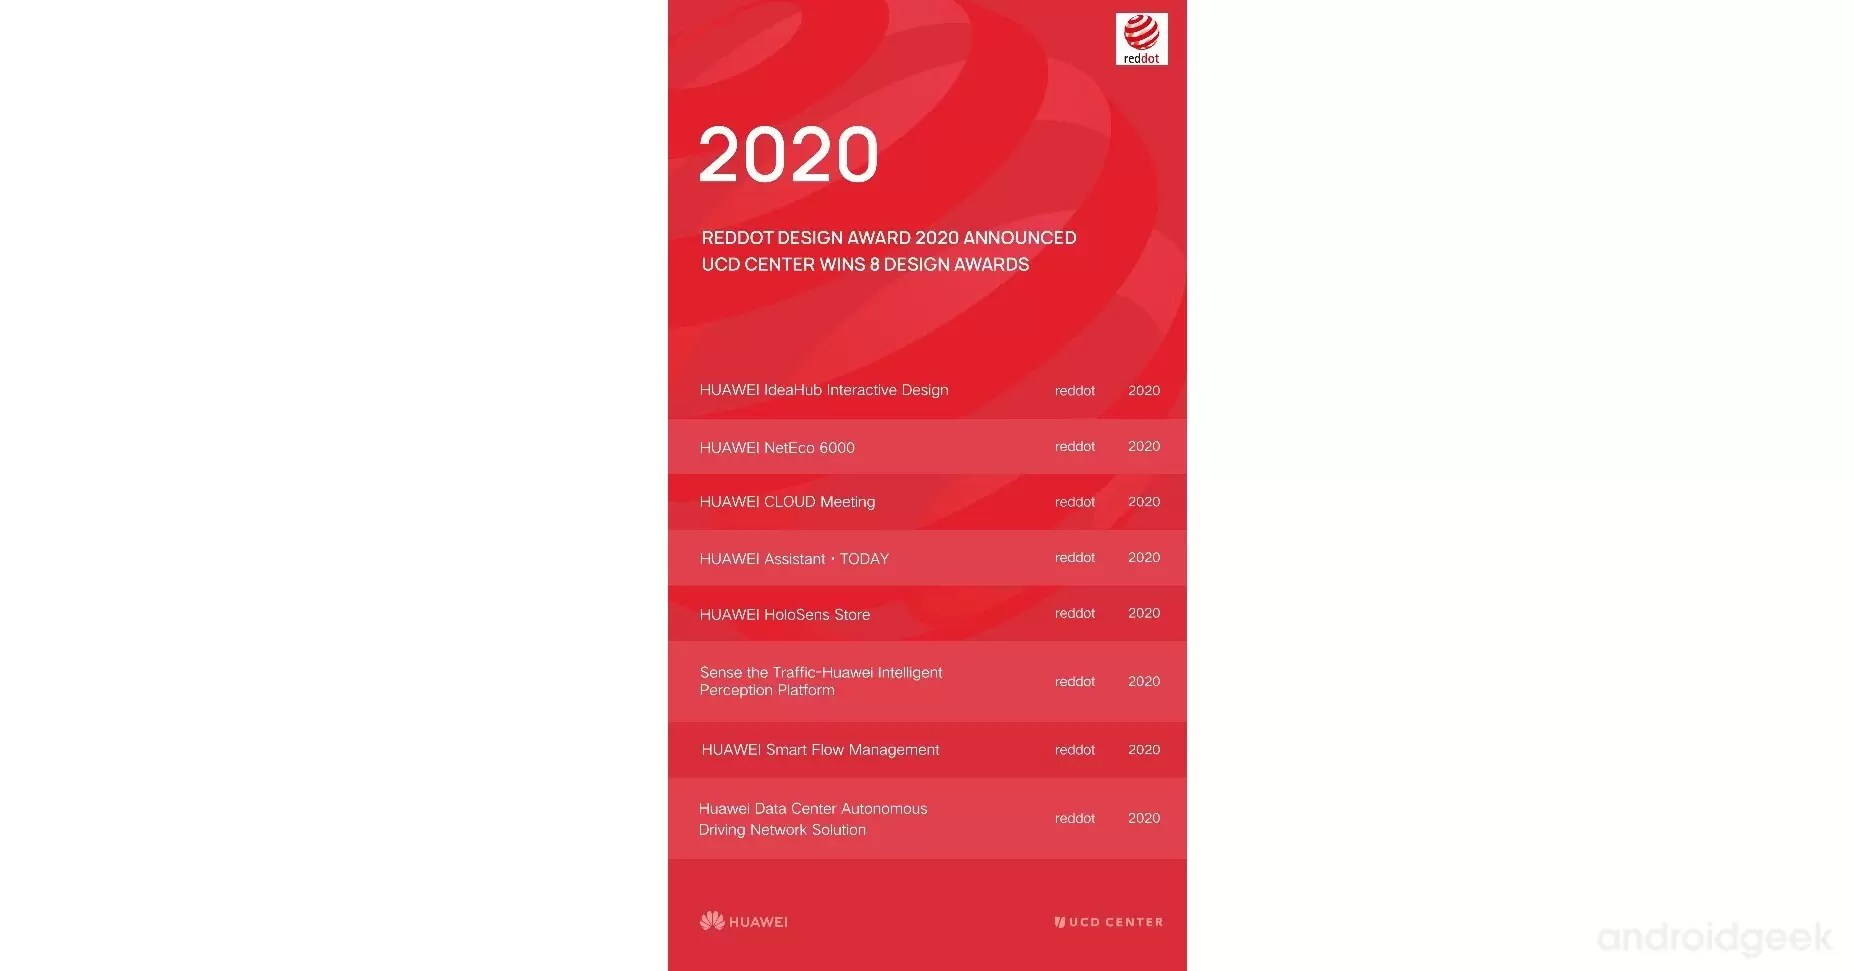 Huawei Assistant ·Today vence prémio Red Dot 2020 2